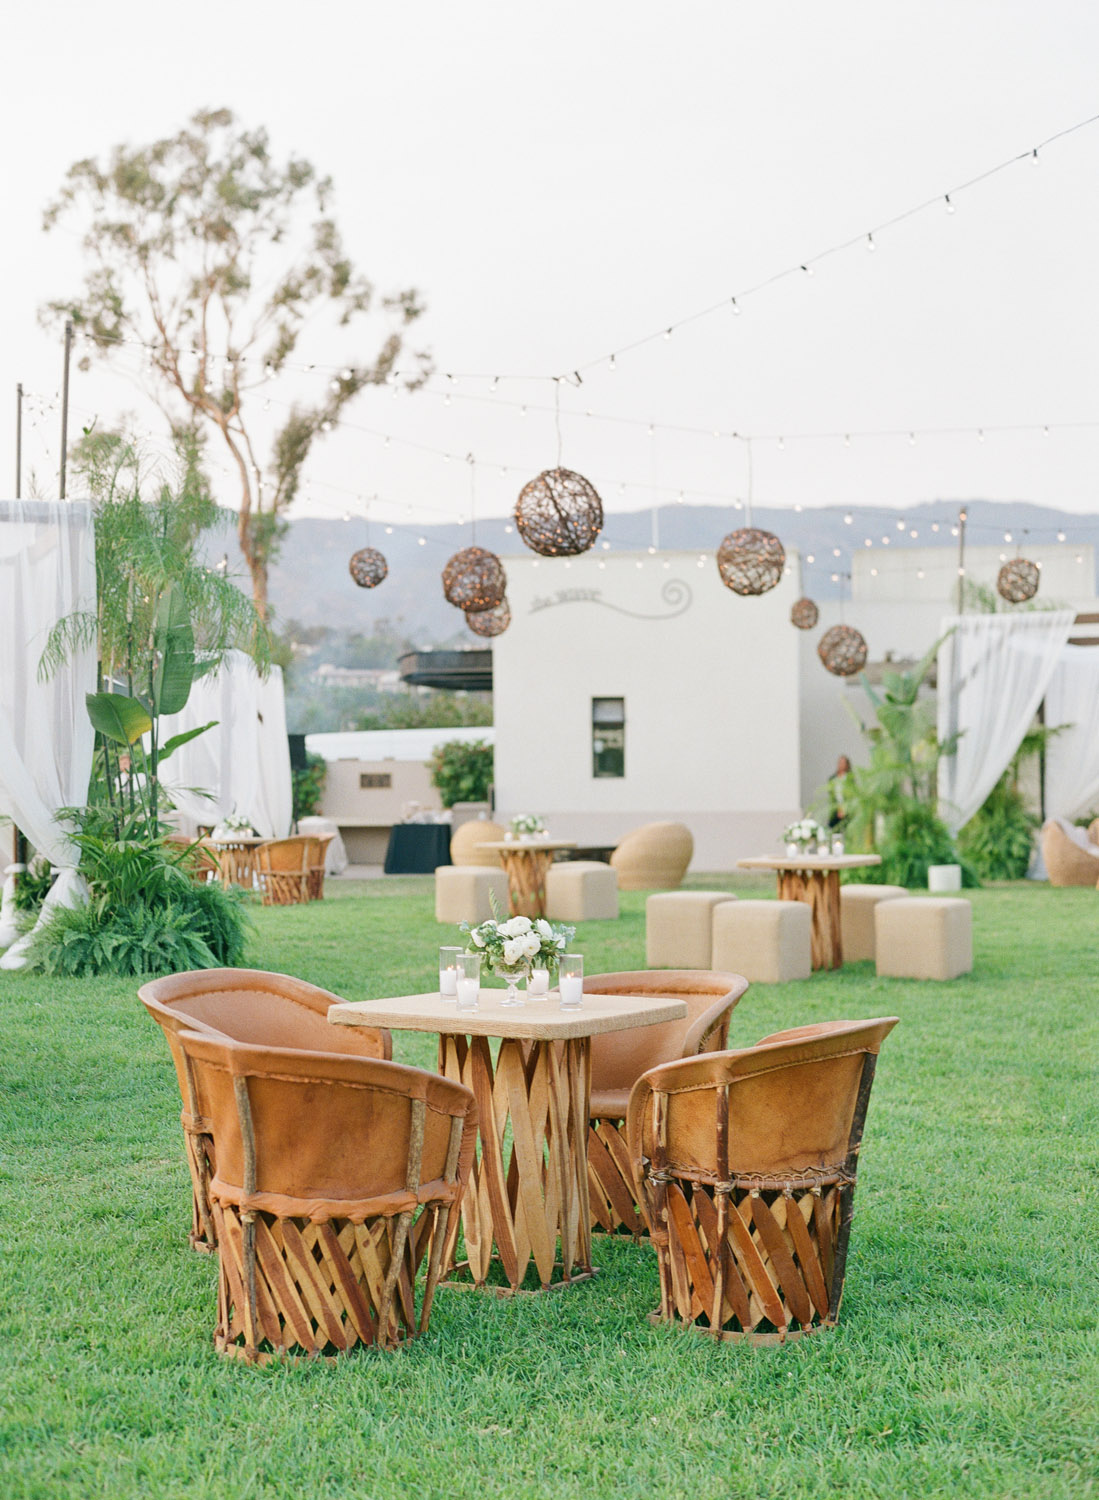 6 Outdoor Entertaining Tips For